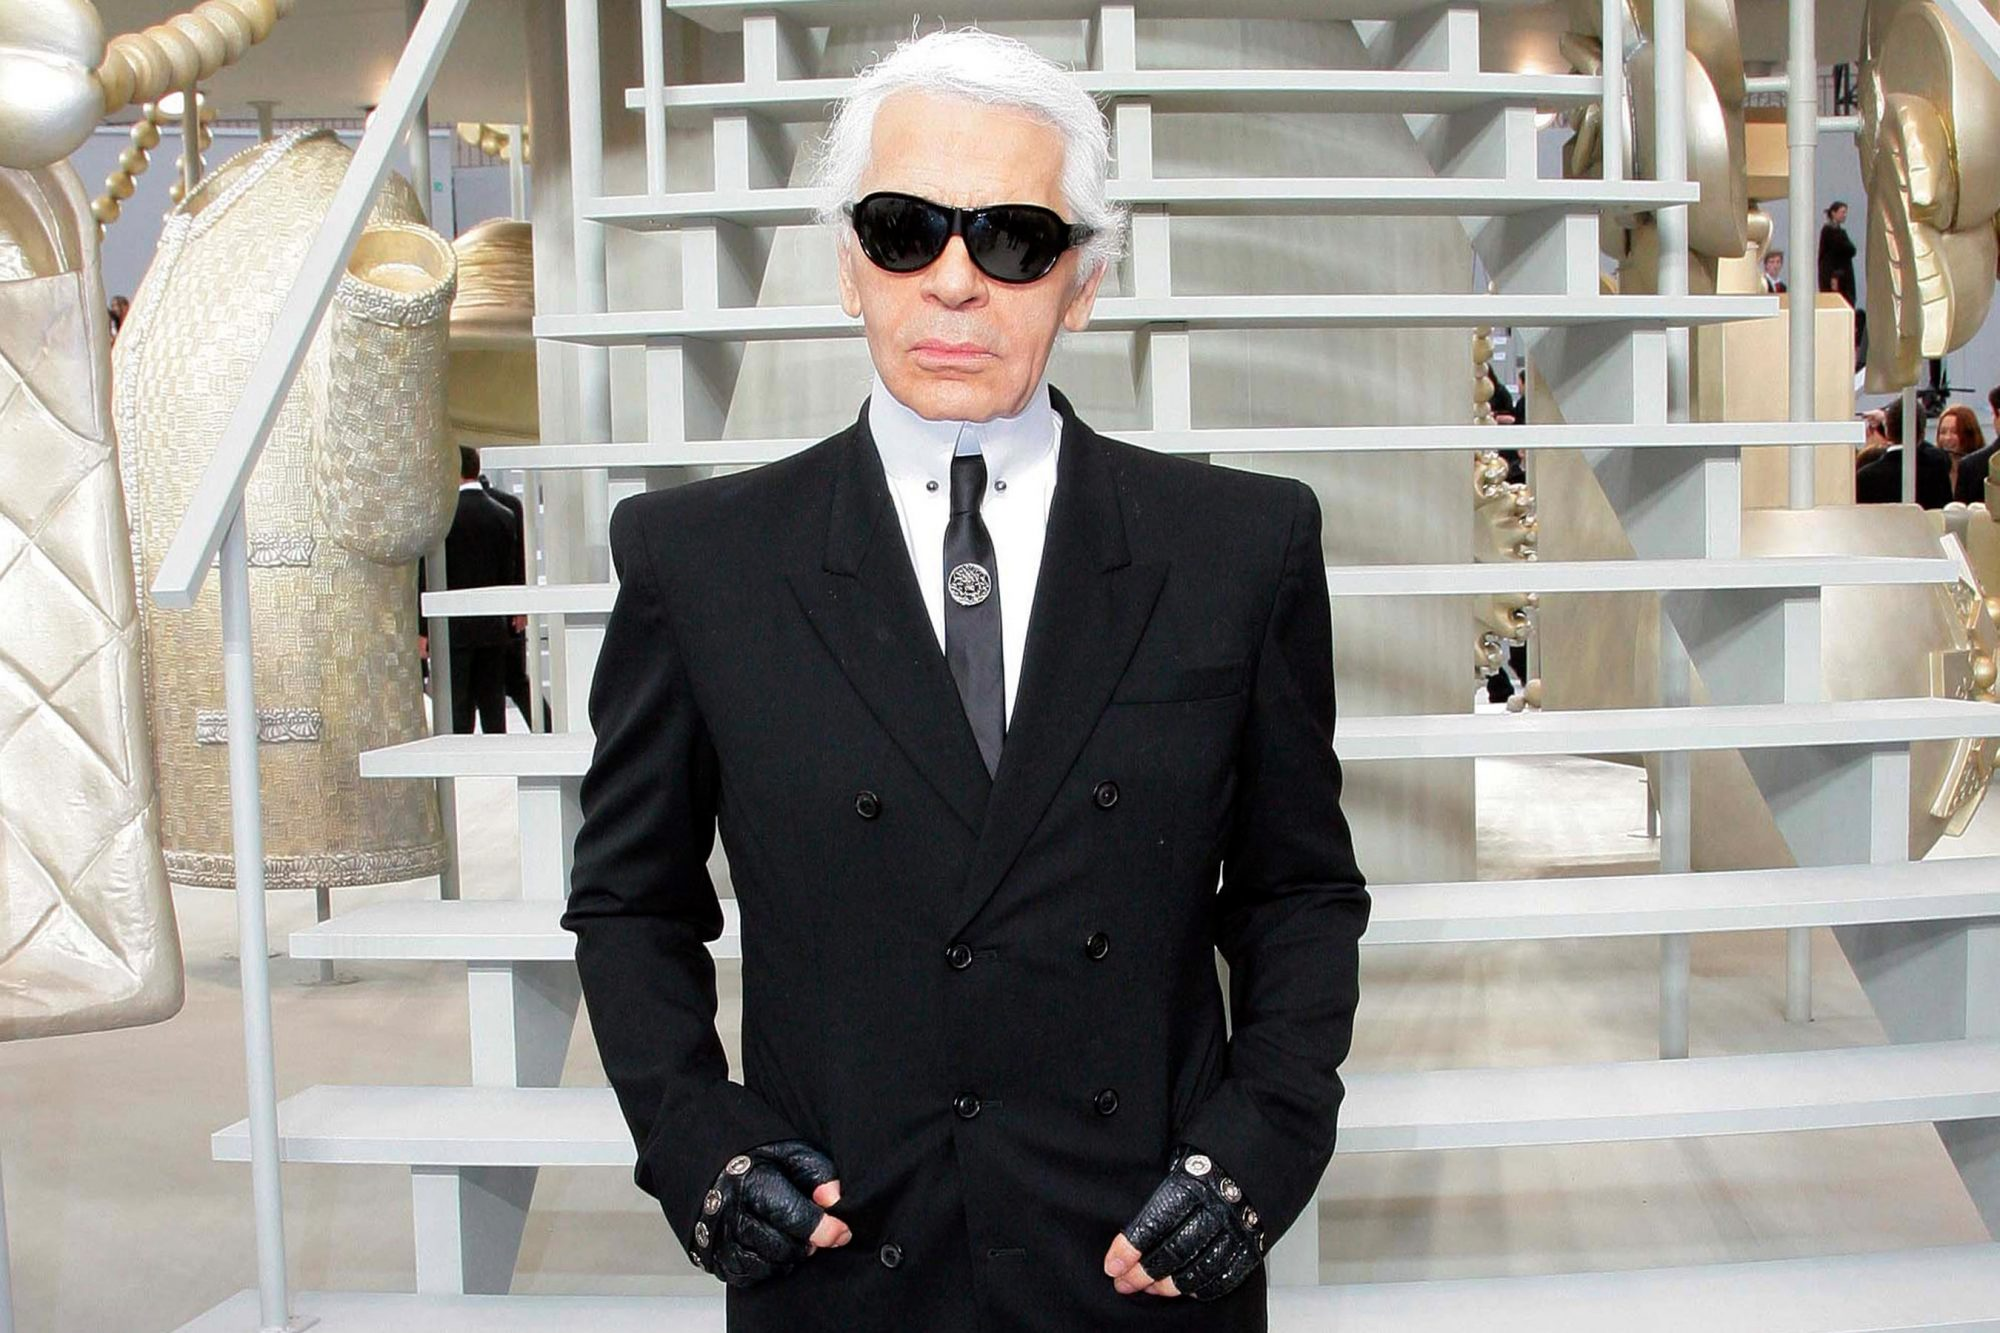 Chanel - PFW Fall Winter 2008/09 - Front Row & Arrival